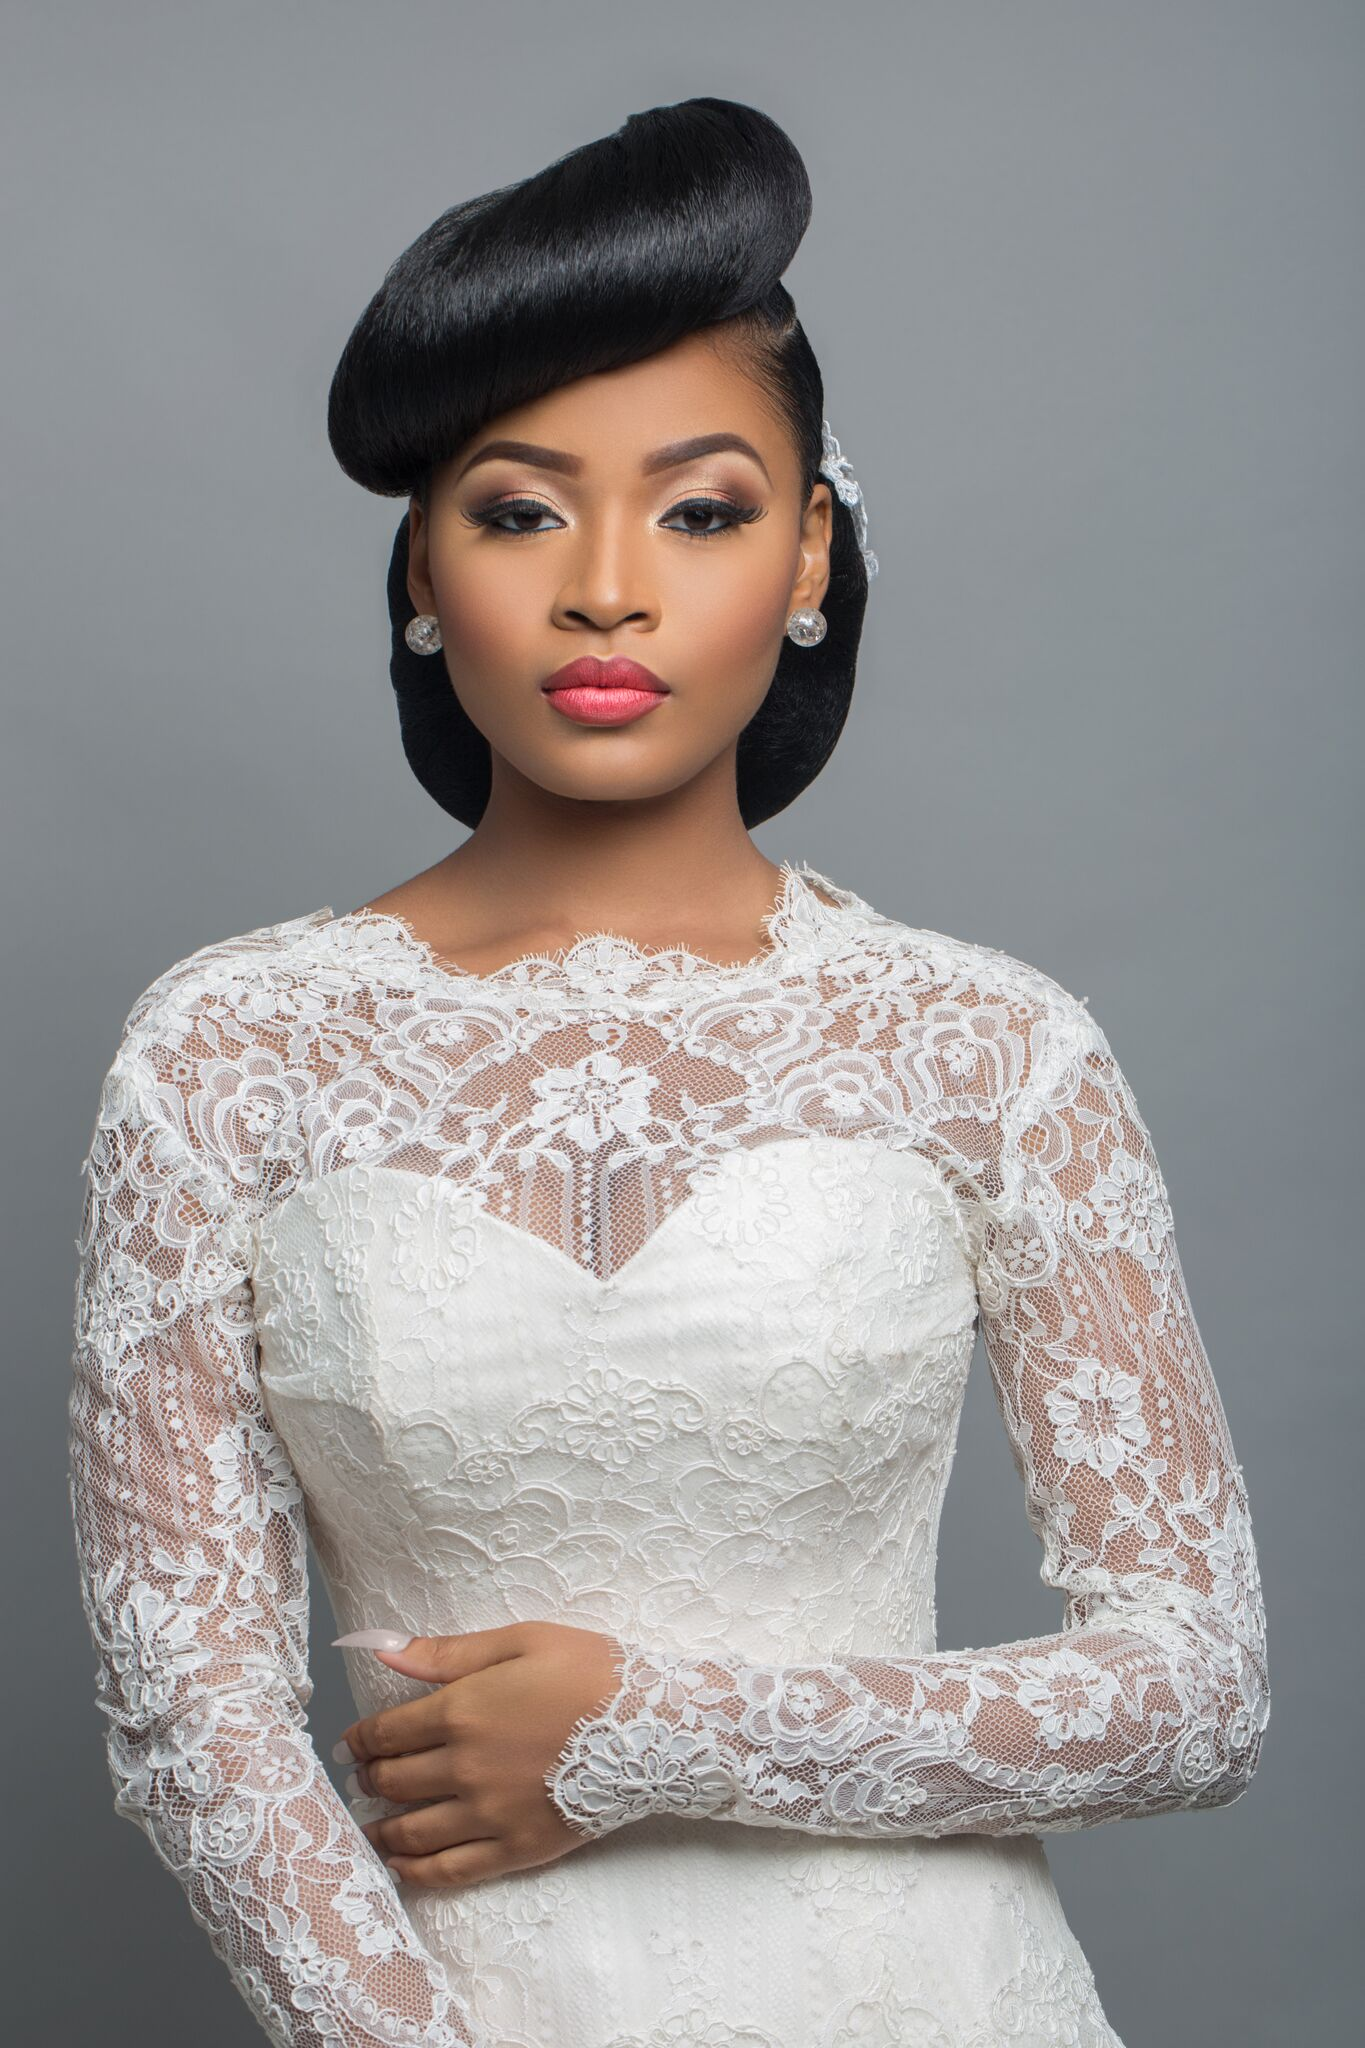 Bn Bridal Beauty From Retro To Afro Photo Shoot From Uk